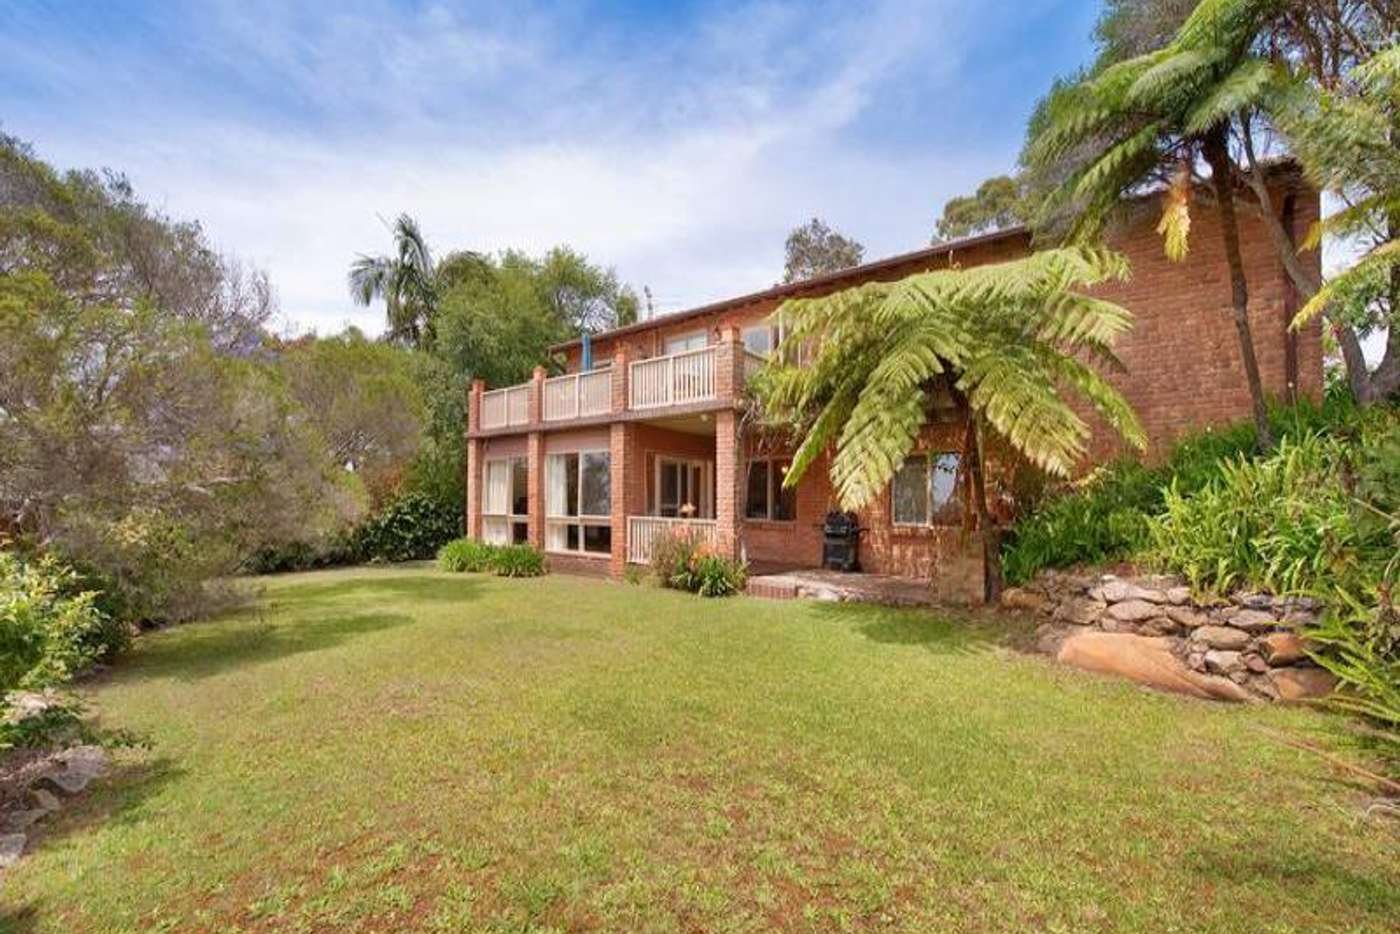 Main view of Homely house listing, 13 Poate Place, Davidson NSW 2085